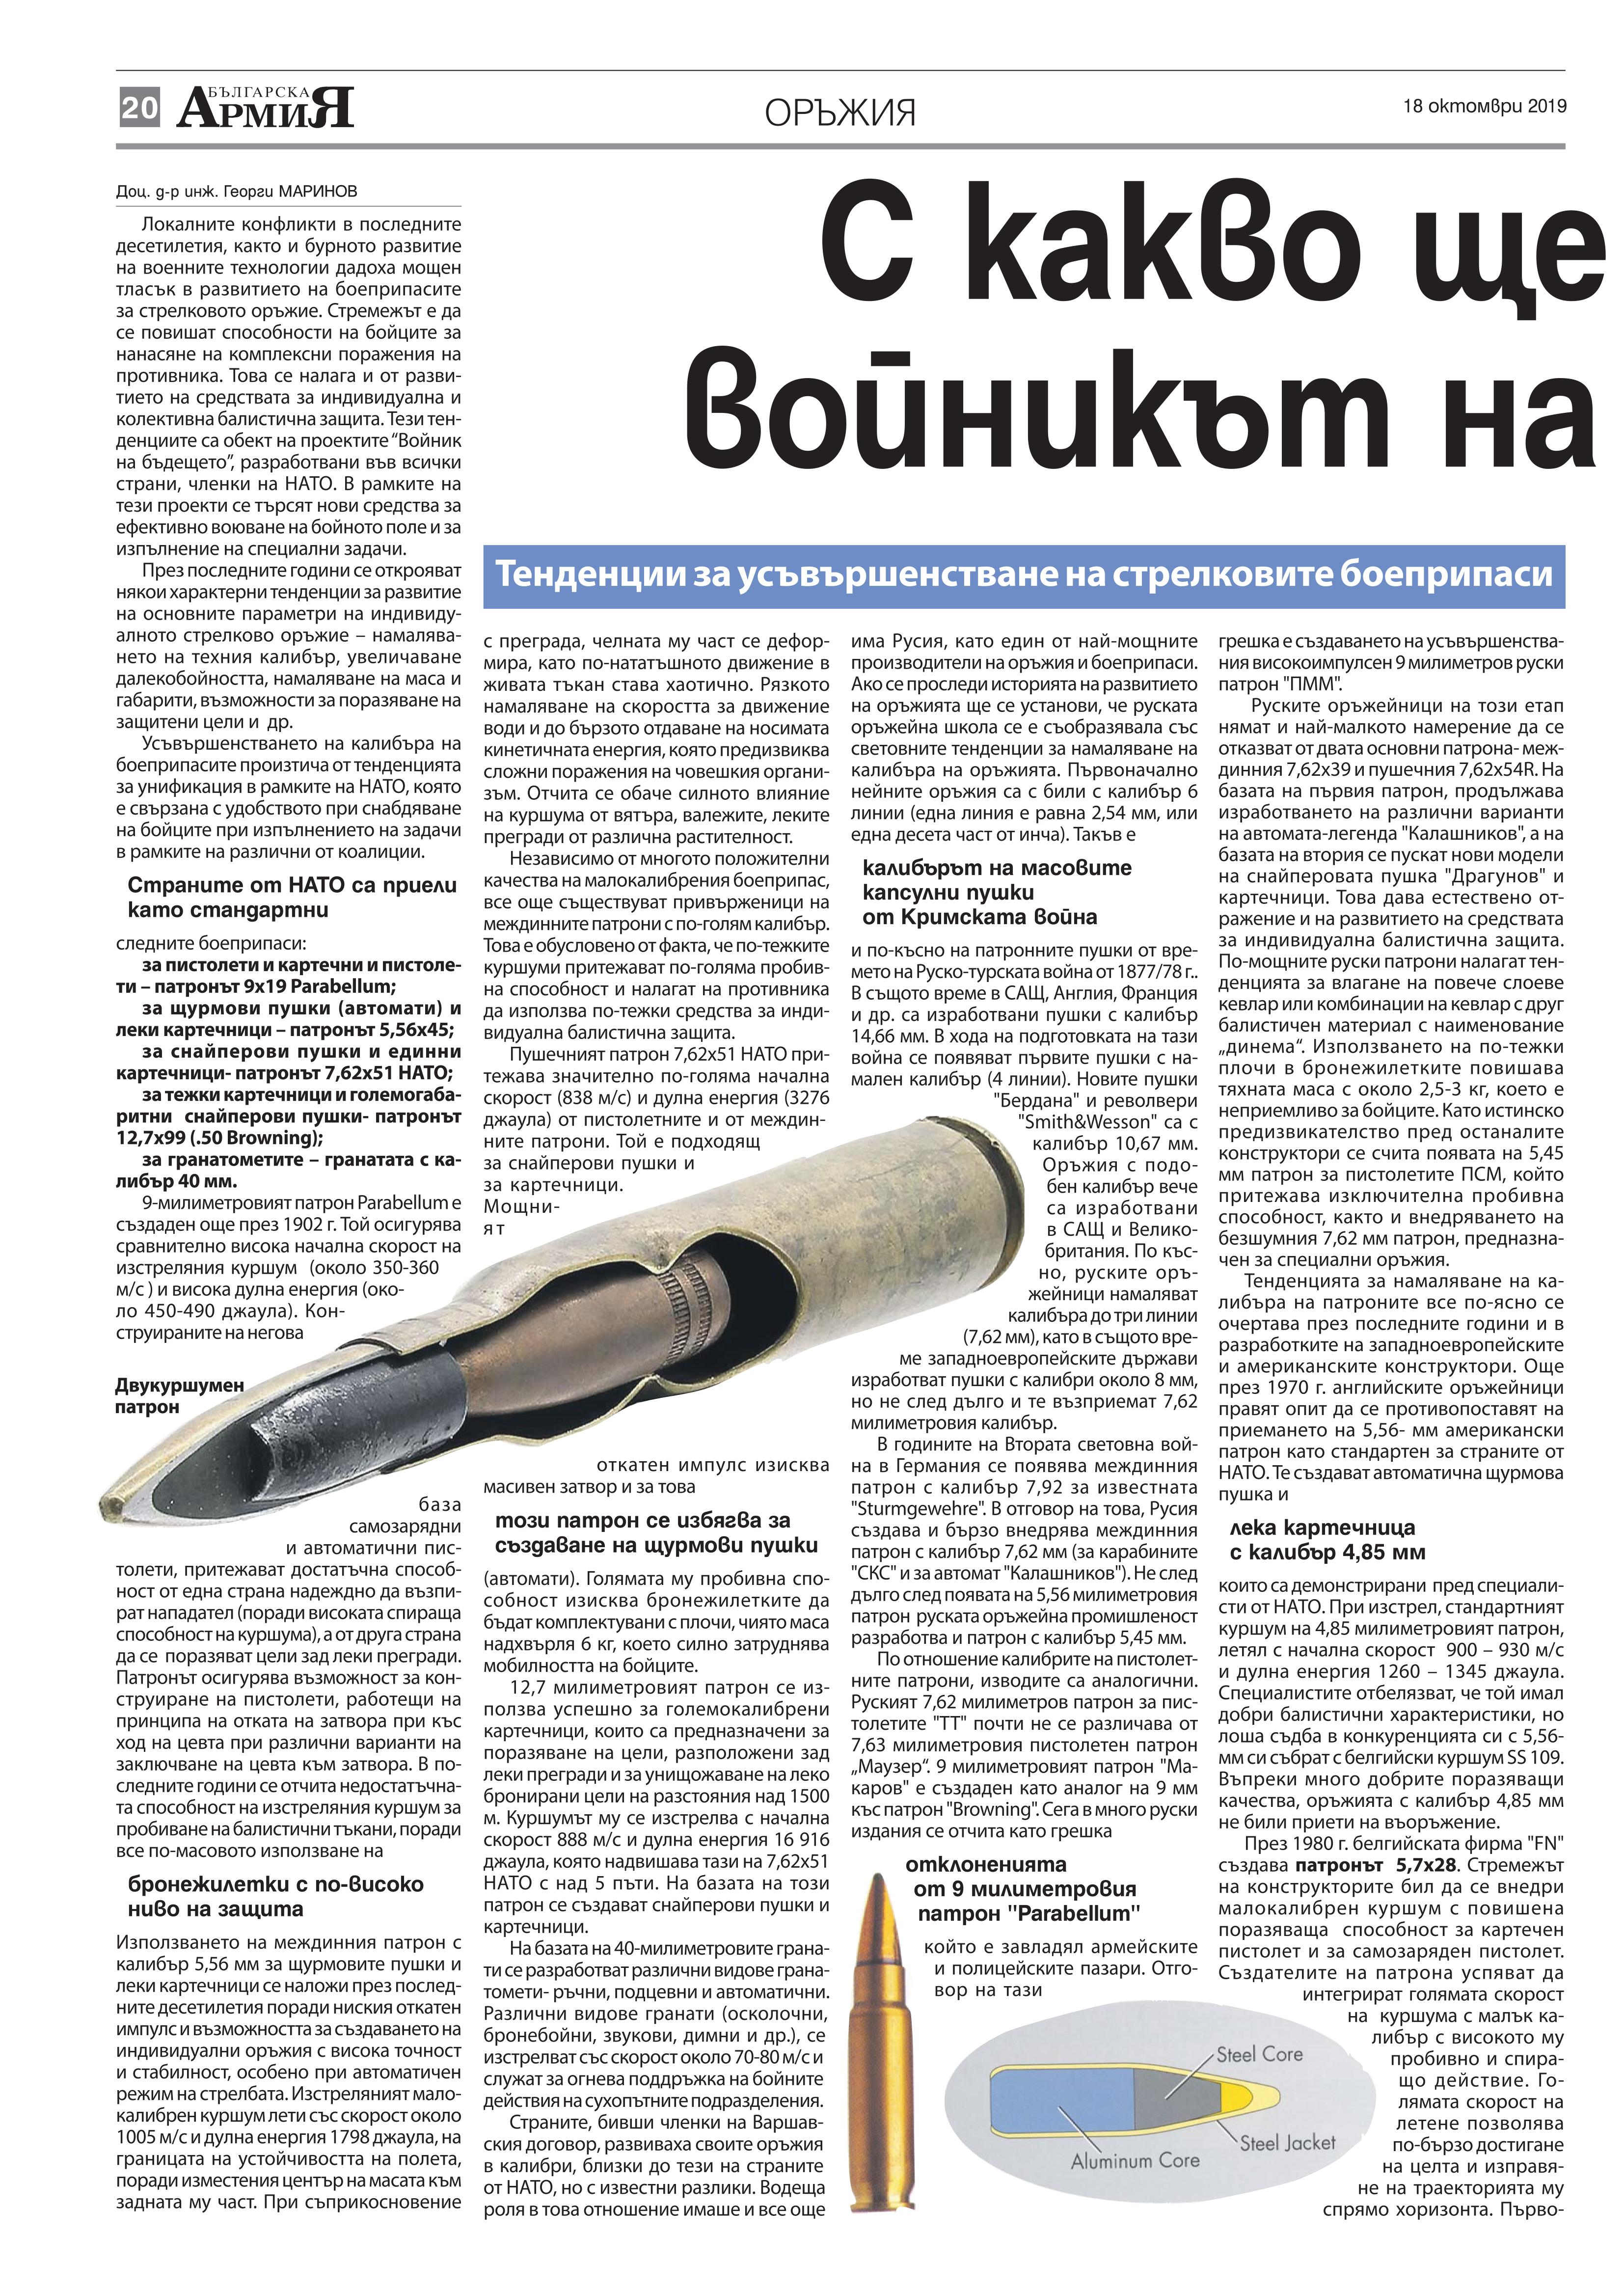 https://armymedia.bg/wp-content/uploads/2015/06/20.page1_-112.jpg